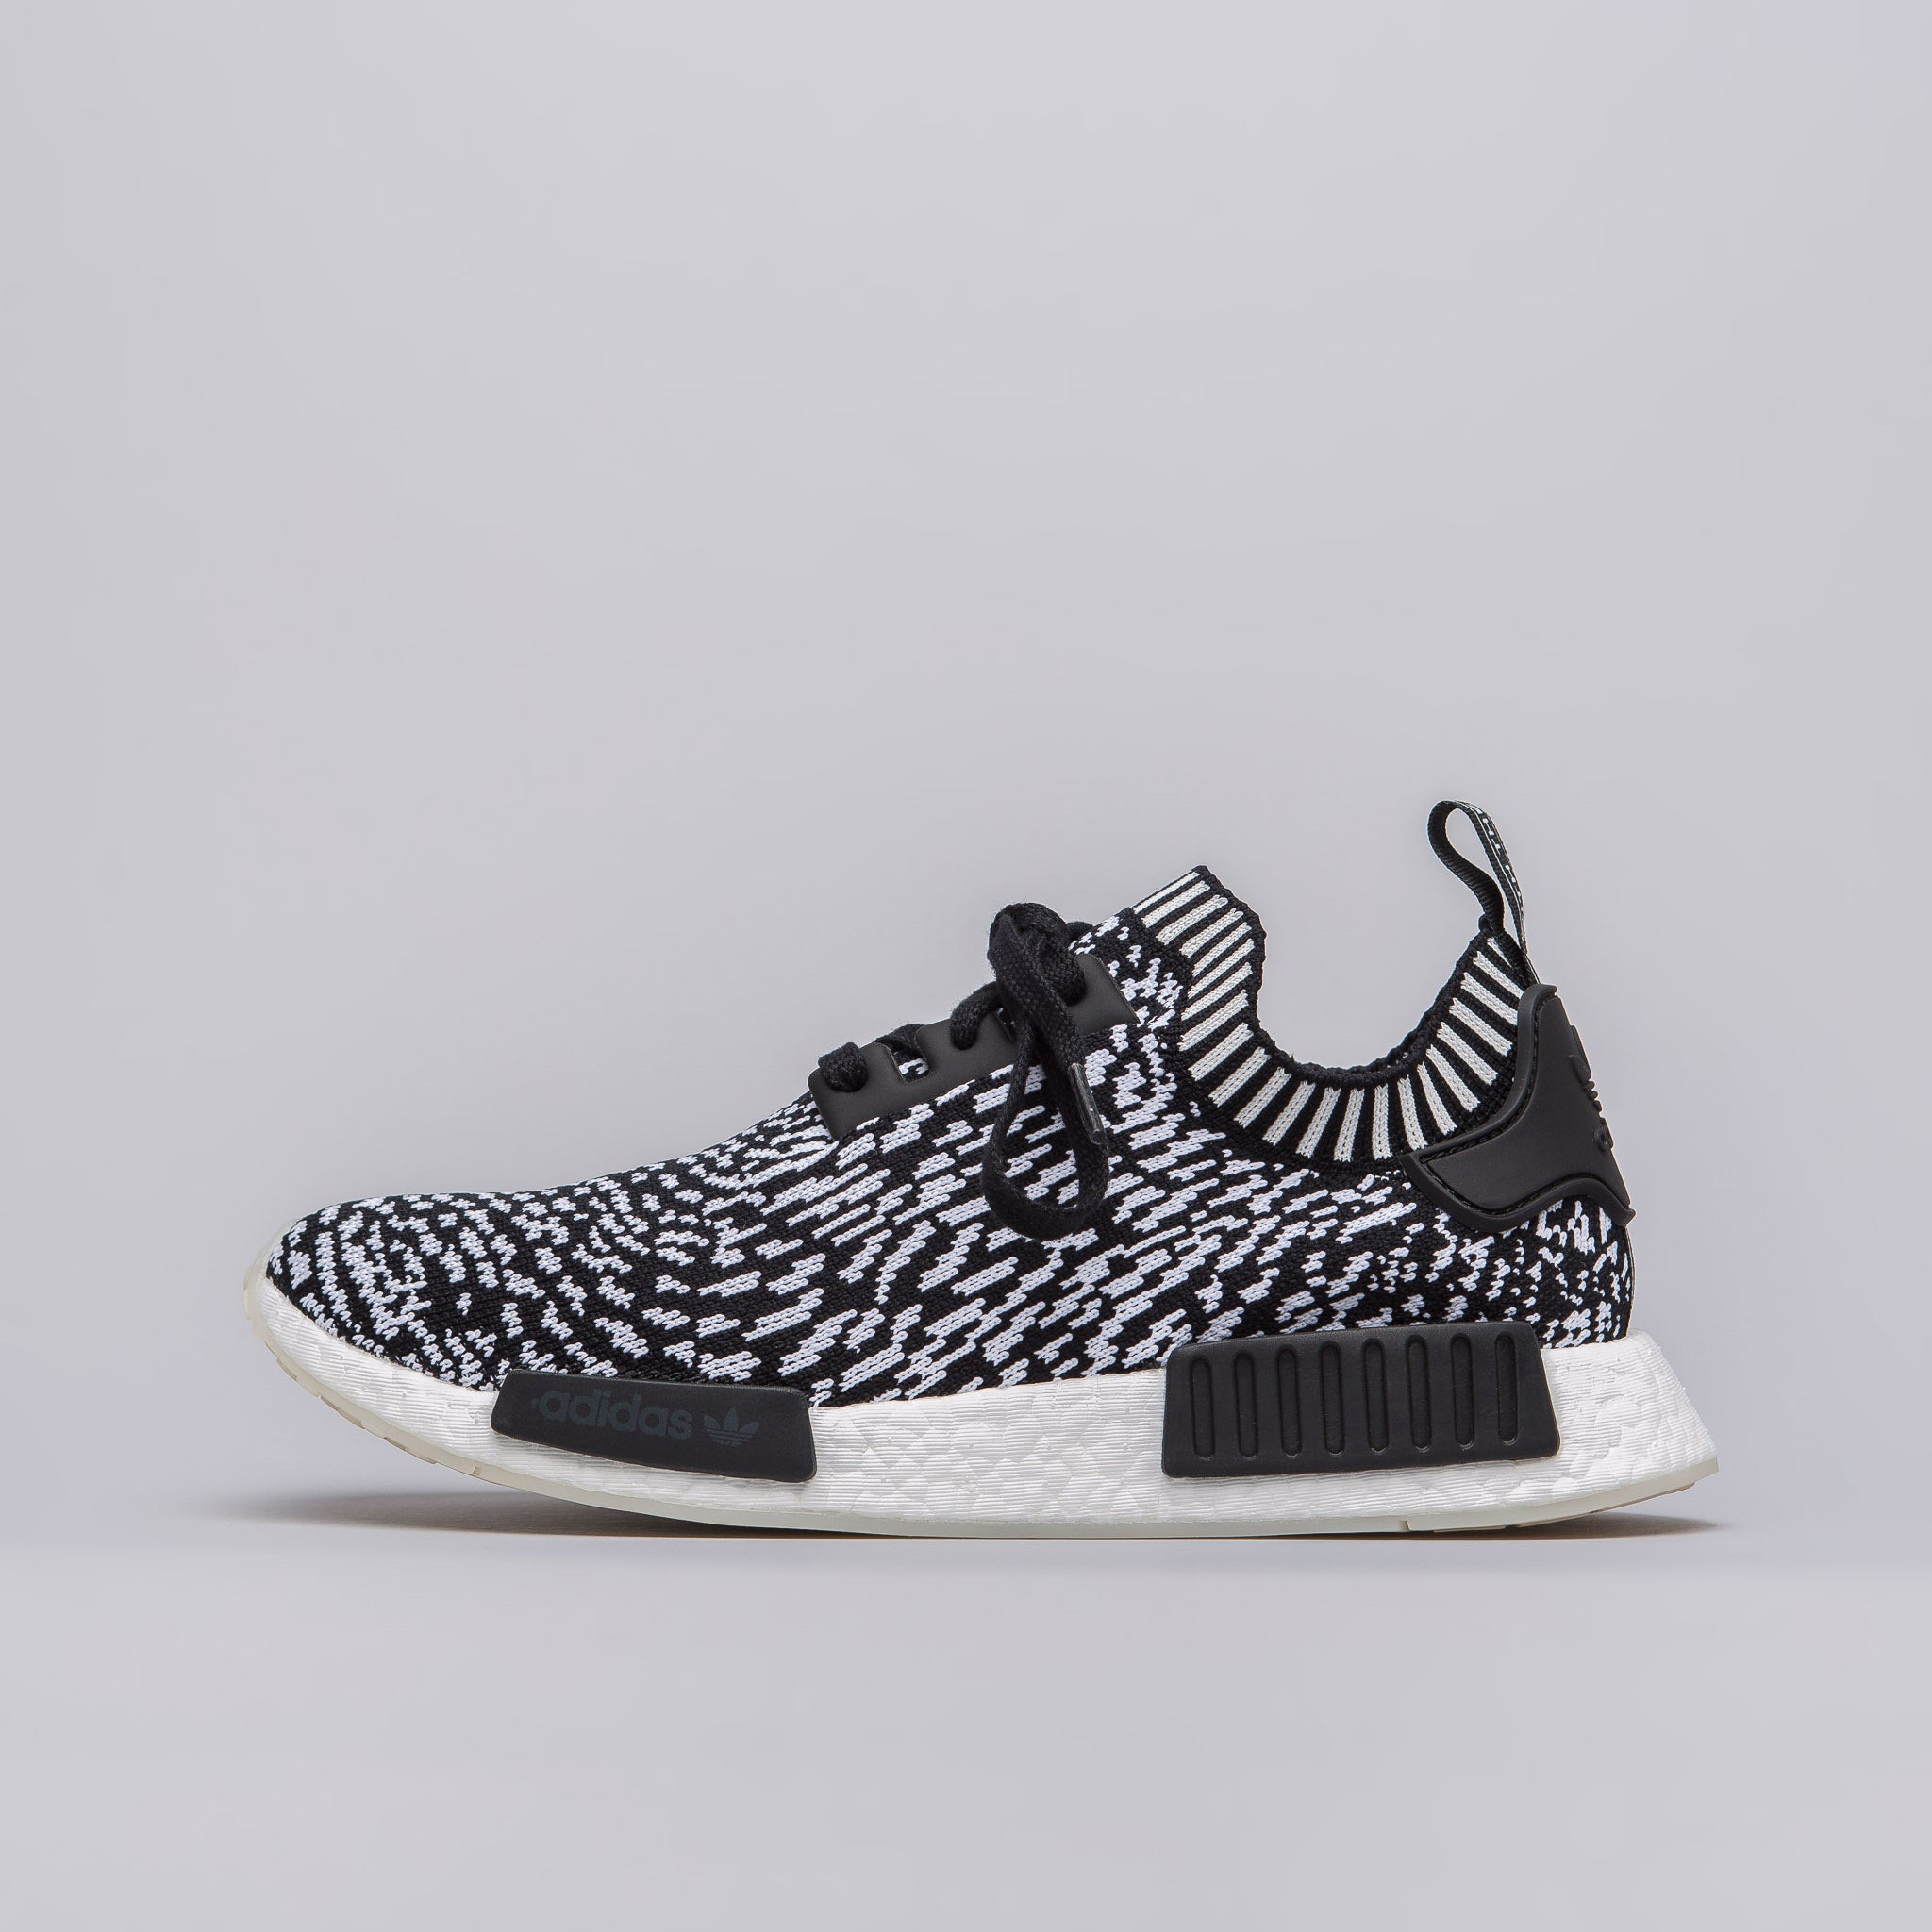 adidas Originals NMD R1 Men's Running Shoes Black/Solid